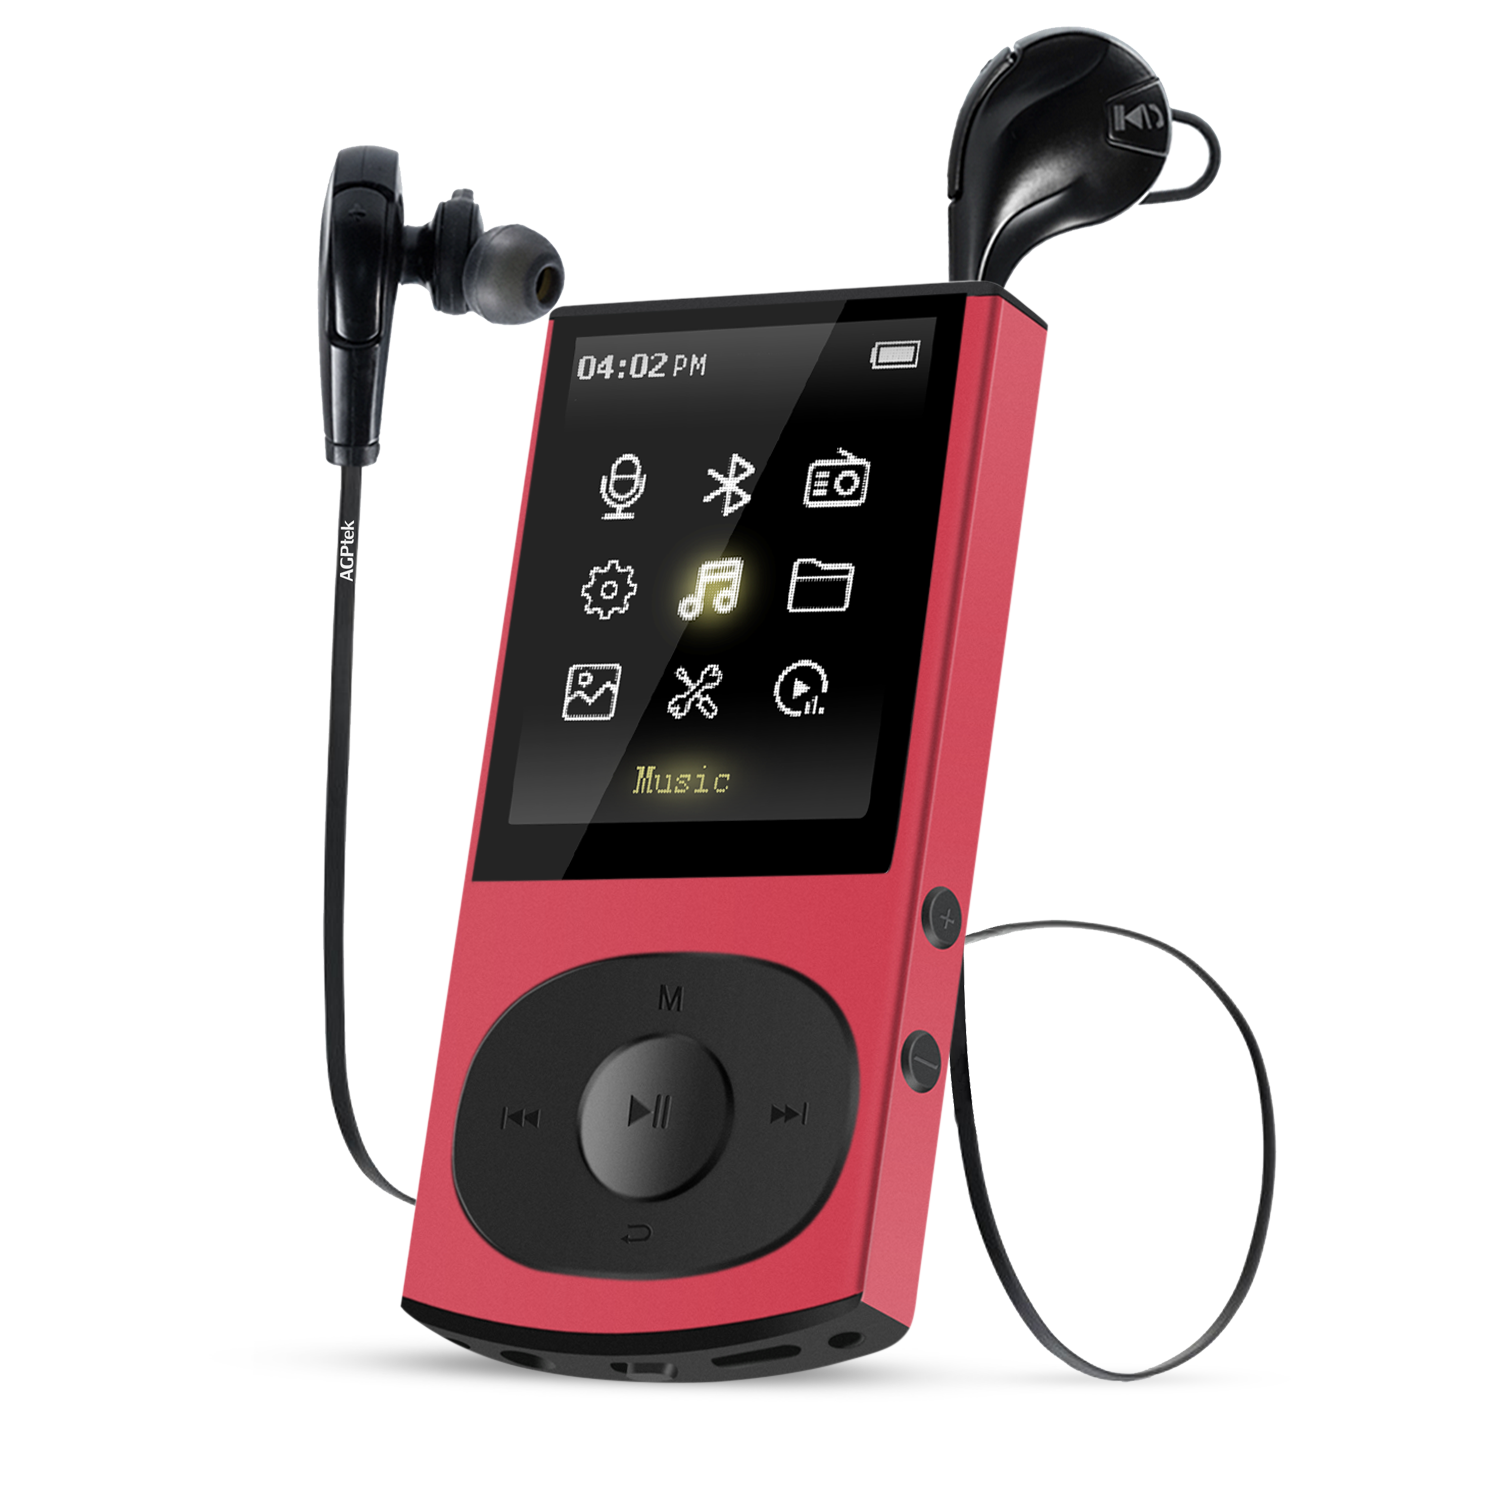 AGPTEK C3 8GB Bluetooth 4.0 MP3 Player with Bluetooth Wireless Headphones,Lossless music player with FM Radio, Red